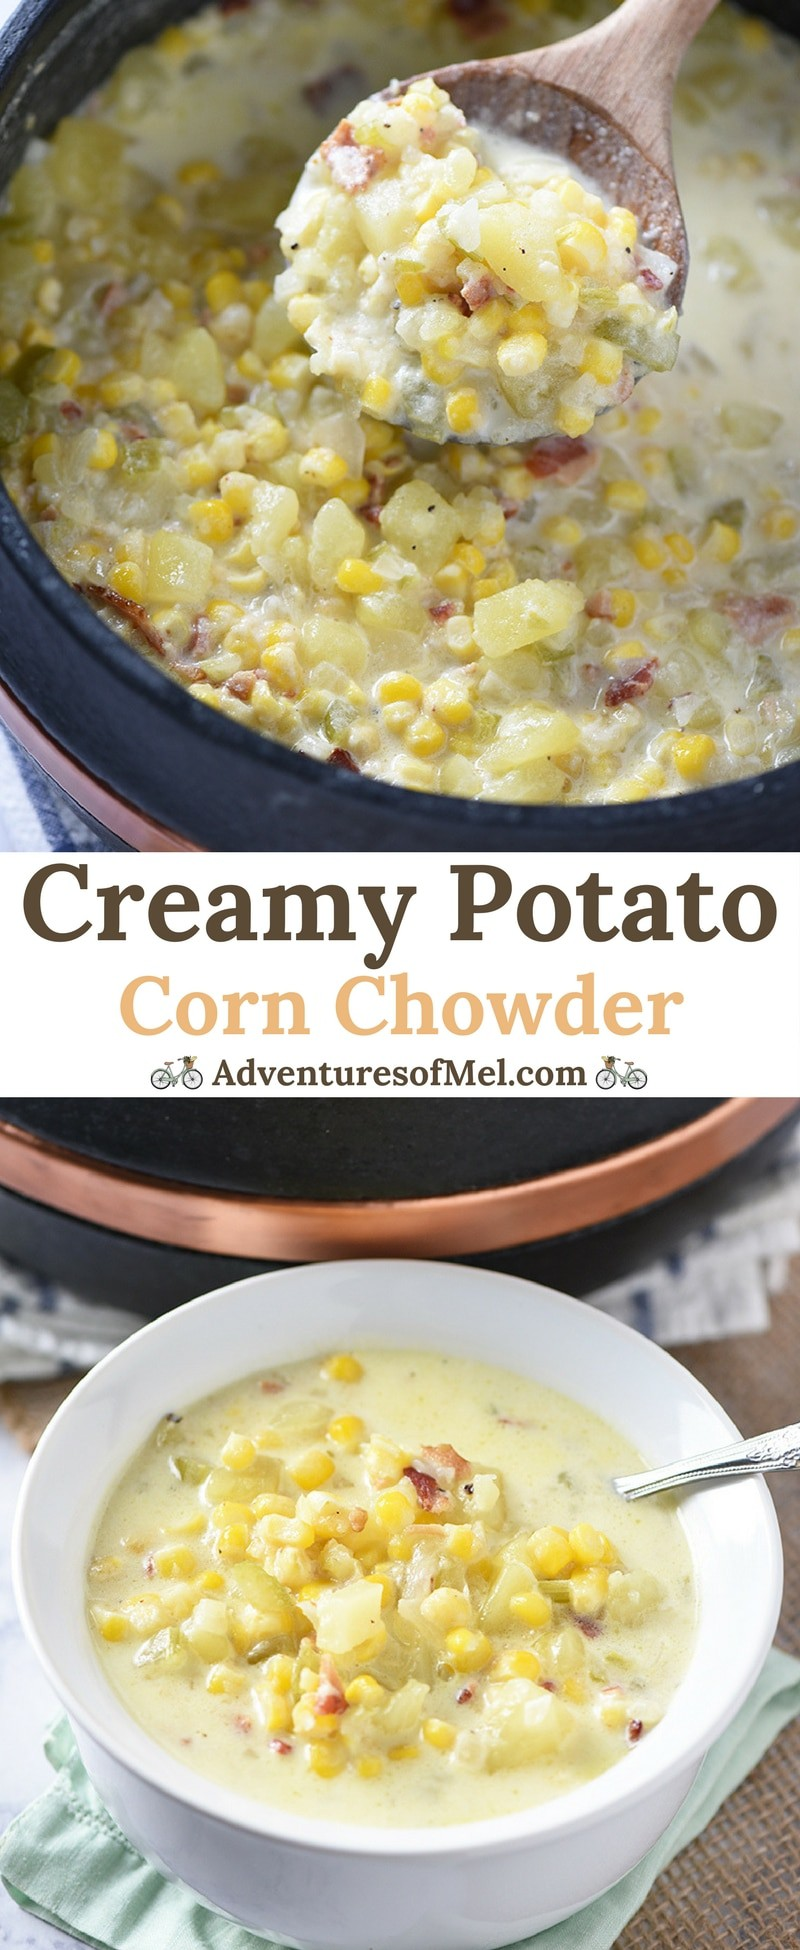 Creamy Potato Corn Chowder with bacon and cheddar is so easy to make. Hearty soup that makes a cozy weeknight meal the whole family will love!